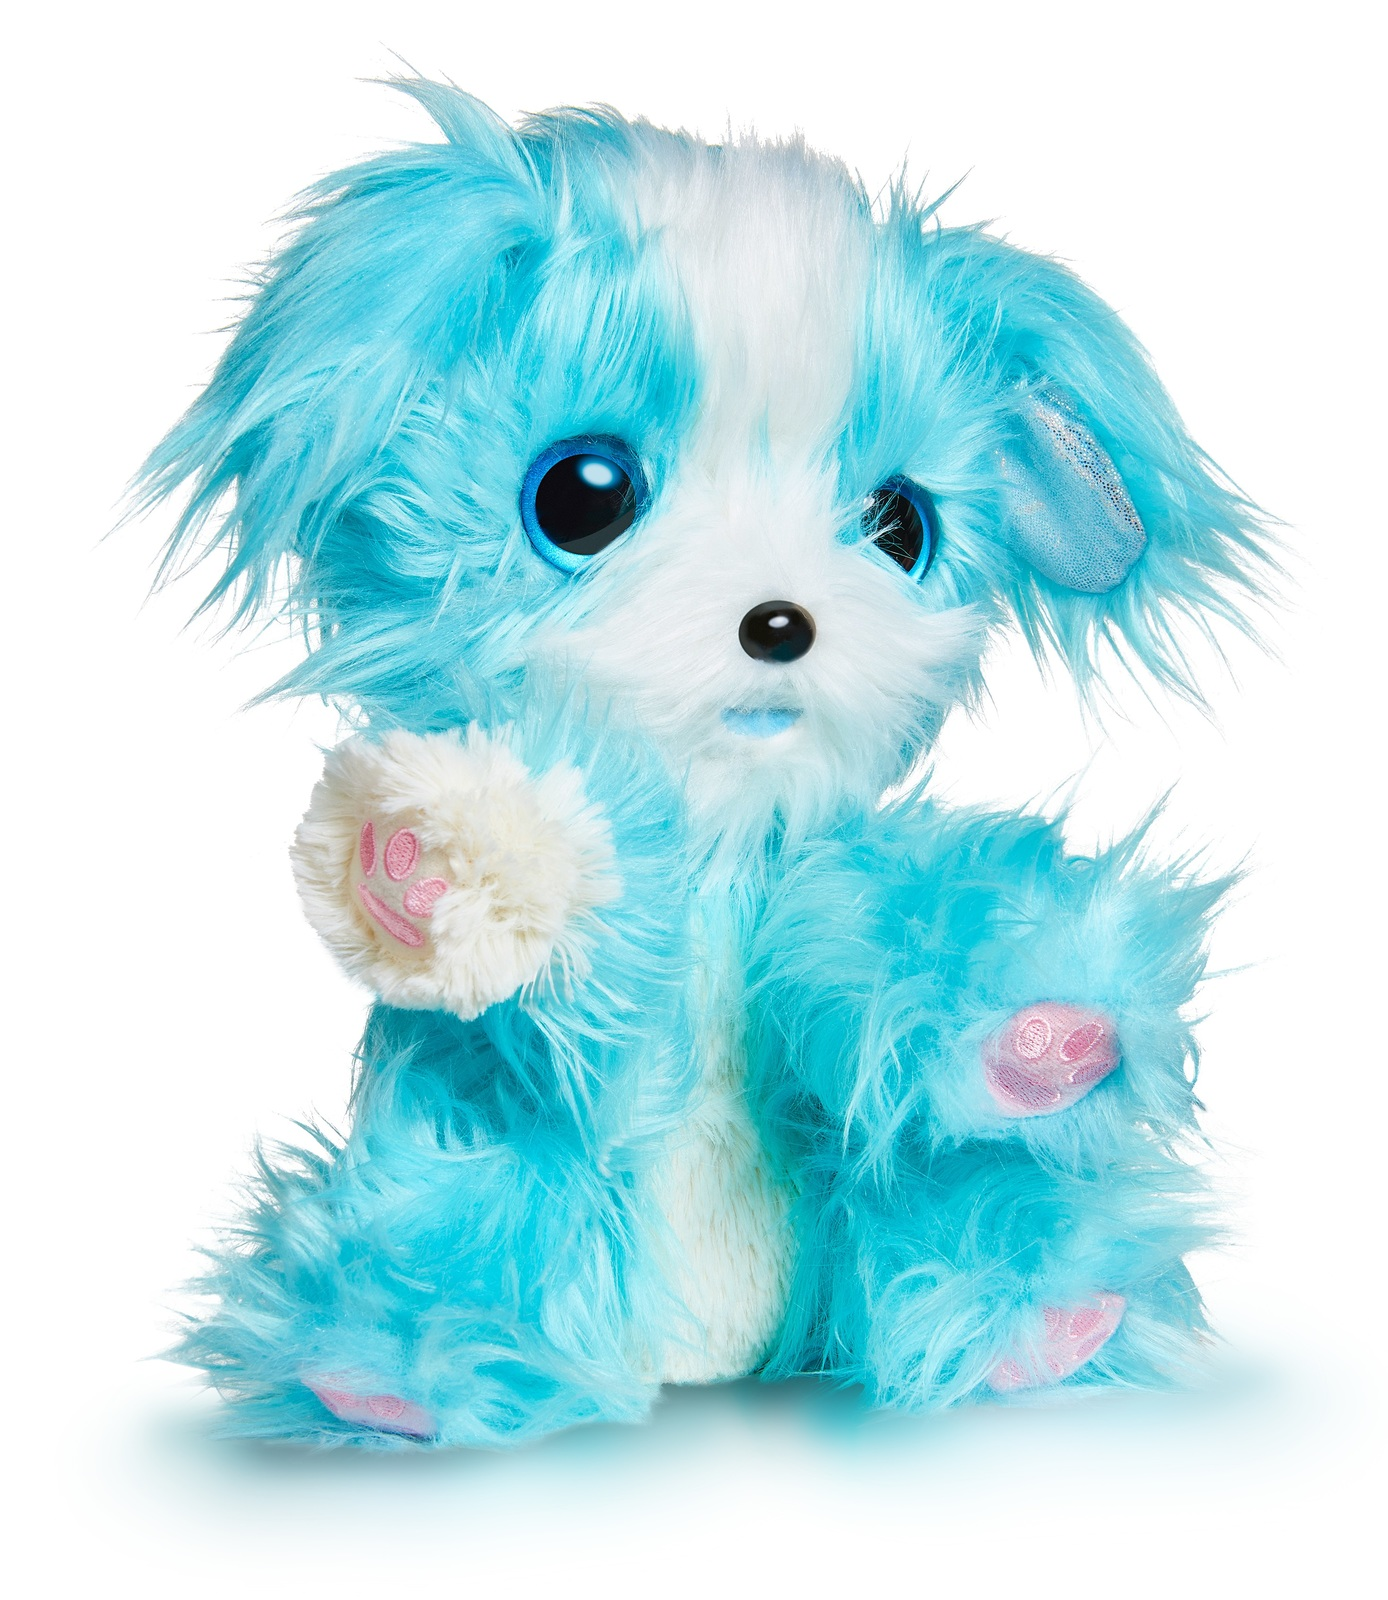 Scruff-a-Luvs: Electronic Surprise Plush - Real Rescue (Assorted Designs) image